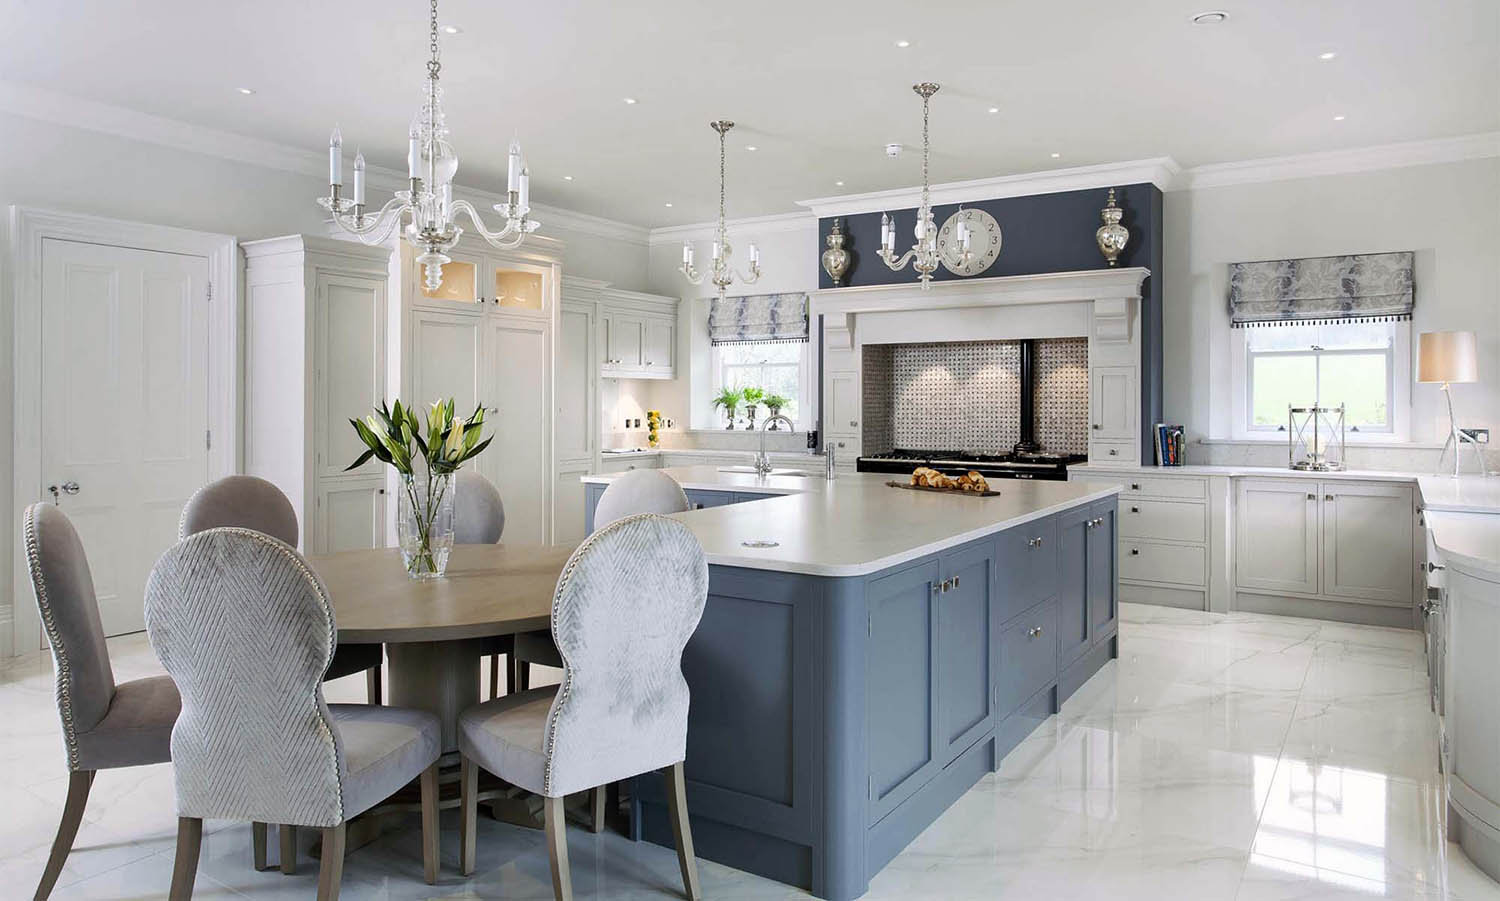 Light gray cream kitchen cabinets with a navy blue island. Light gray countertops.